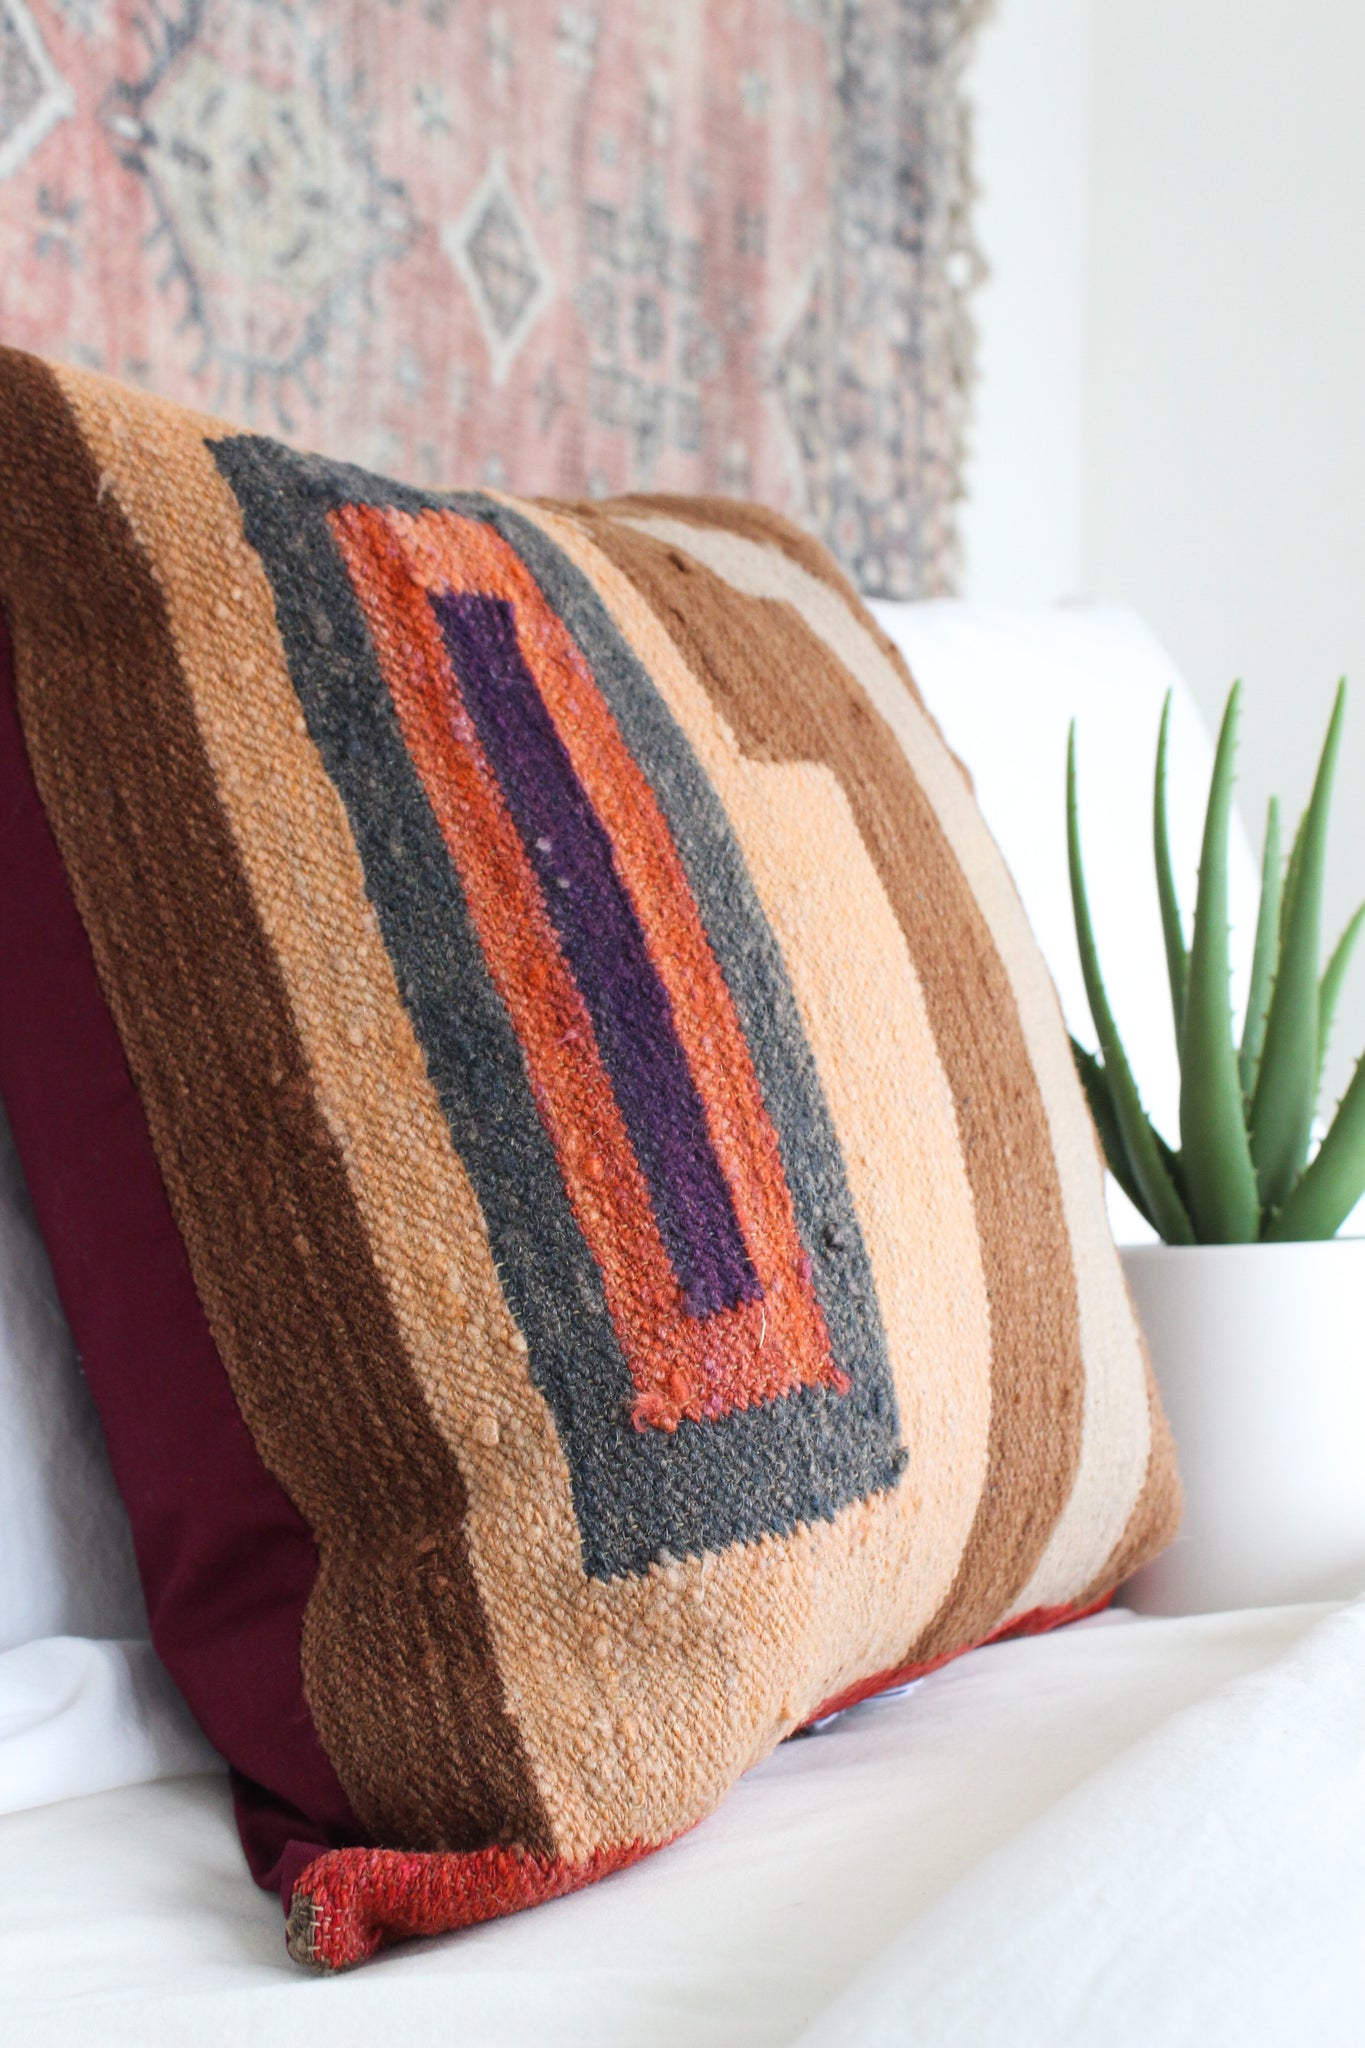 Mocha Swirl Wool Textile Pillow